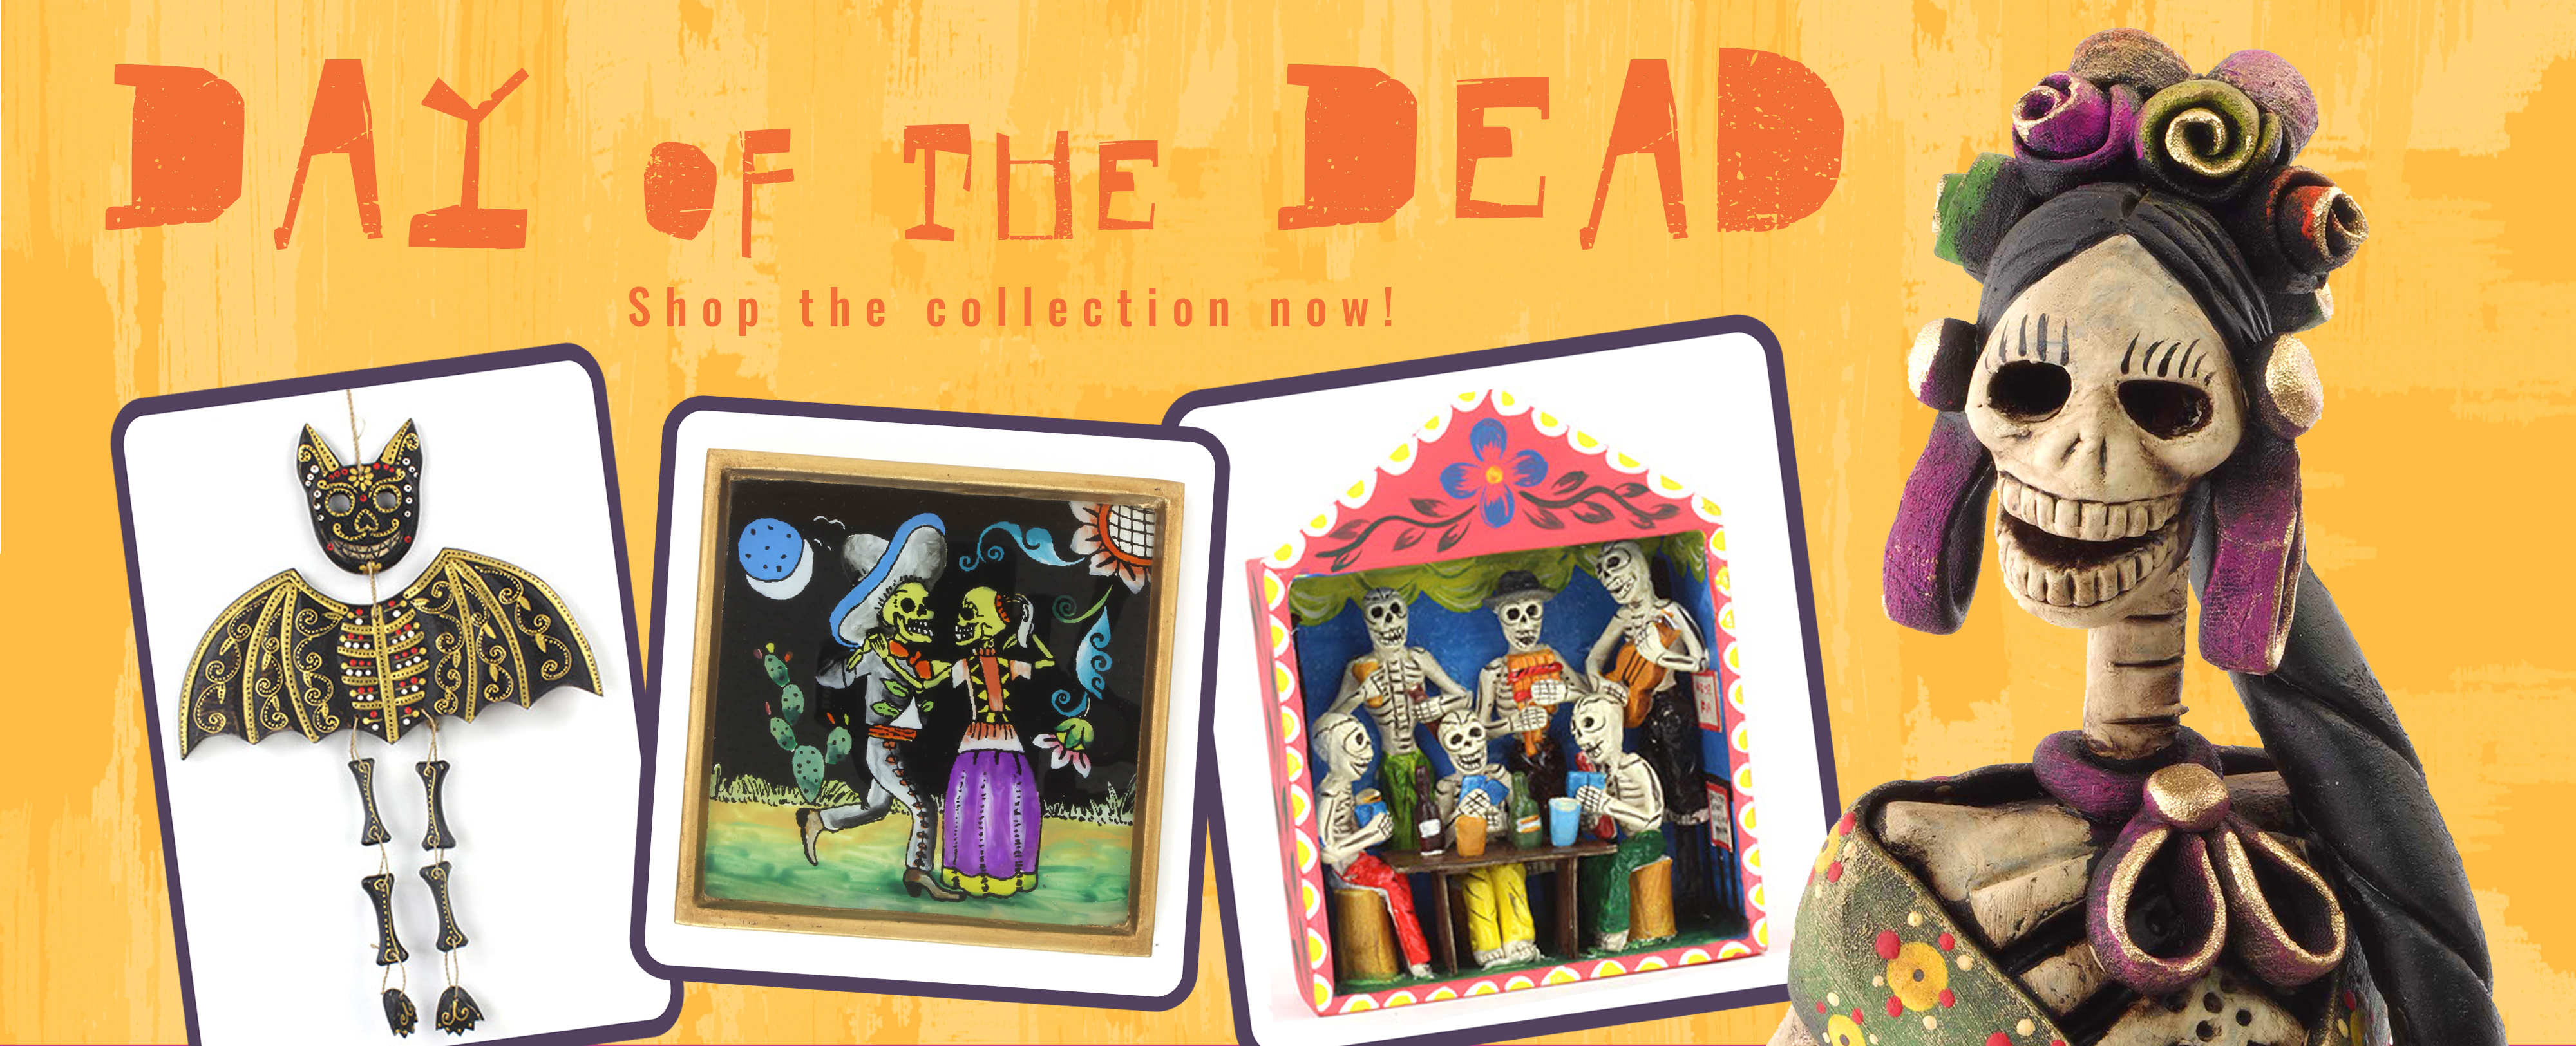 Celebrate day of the Dead in style!